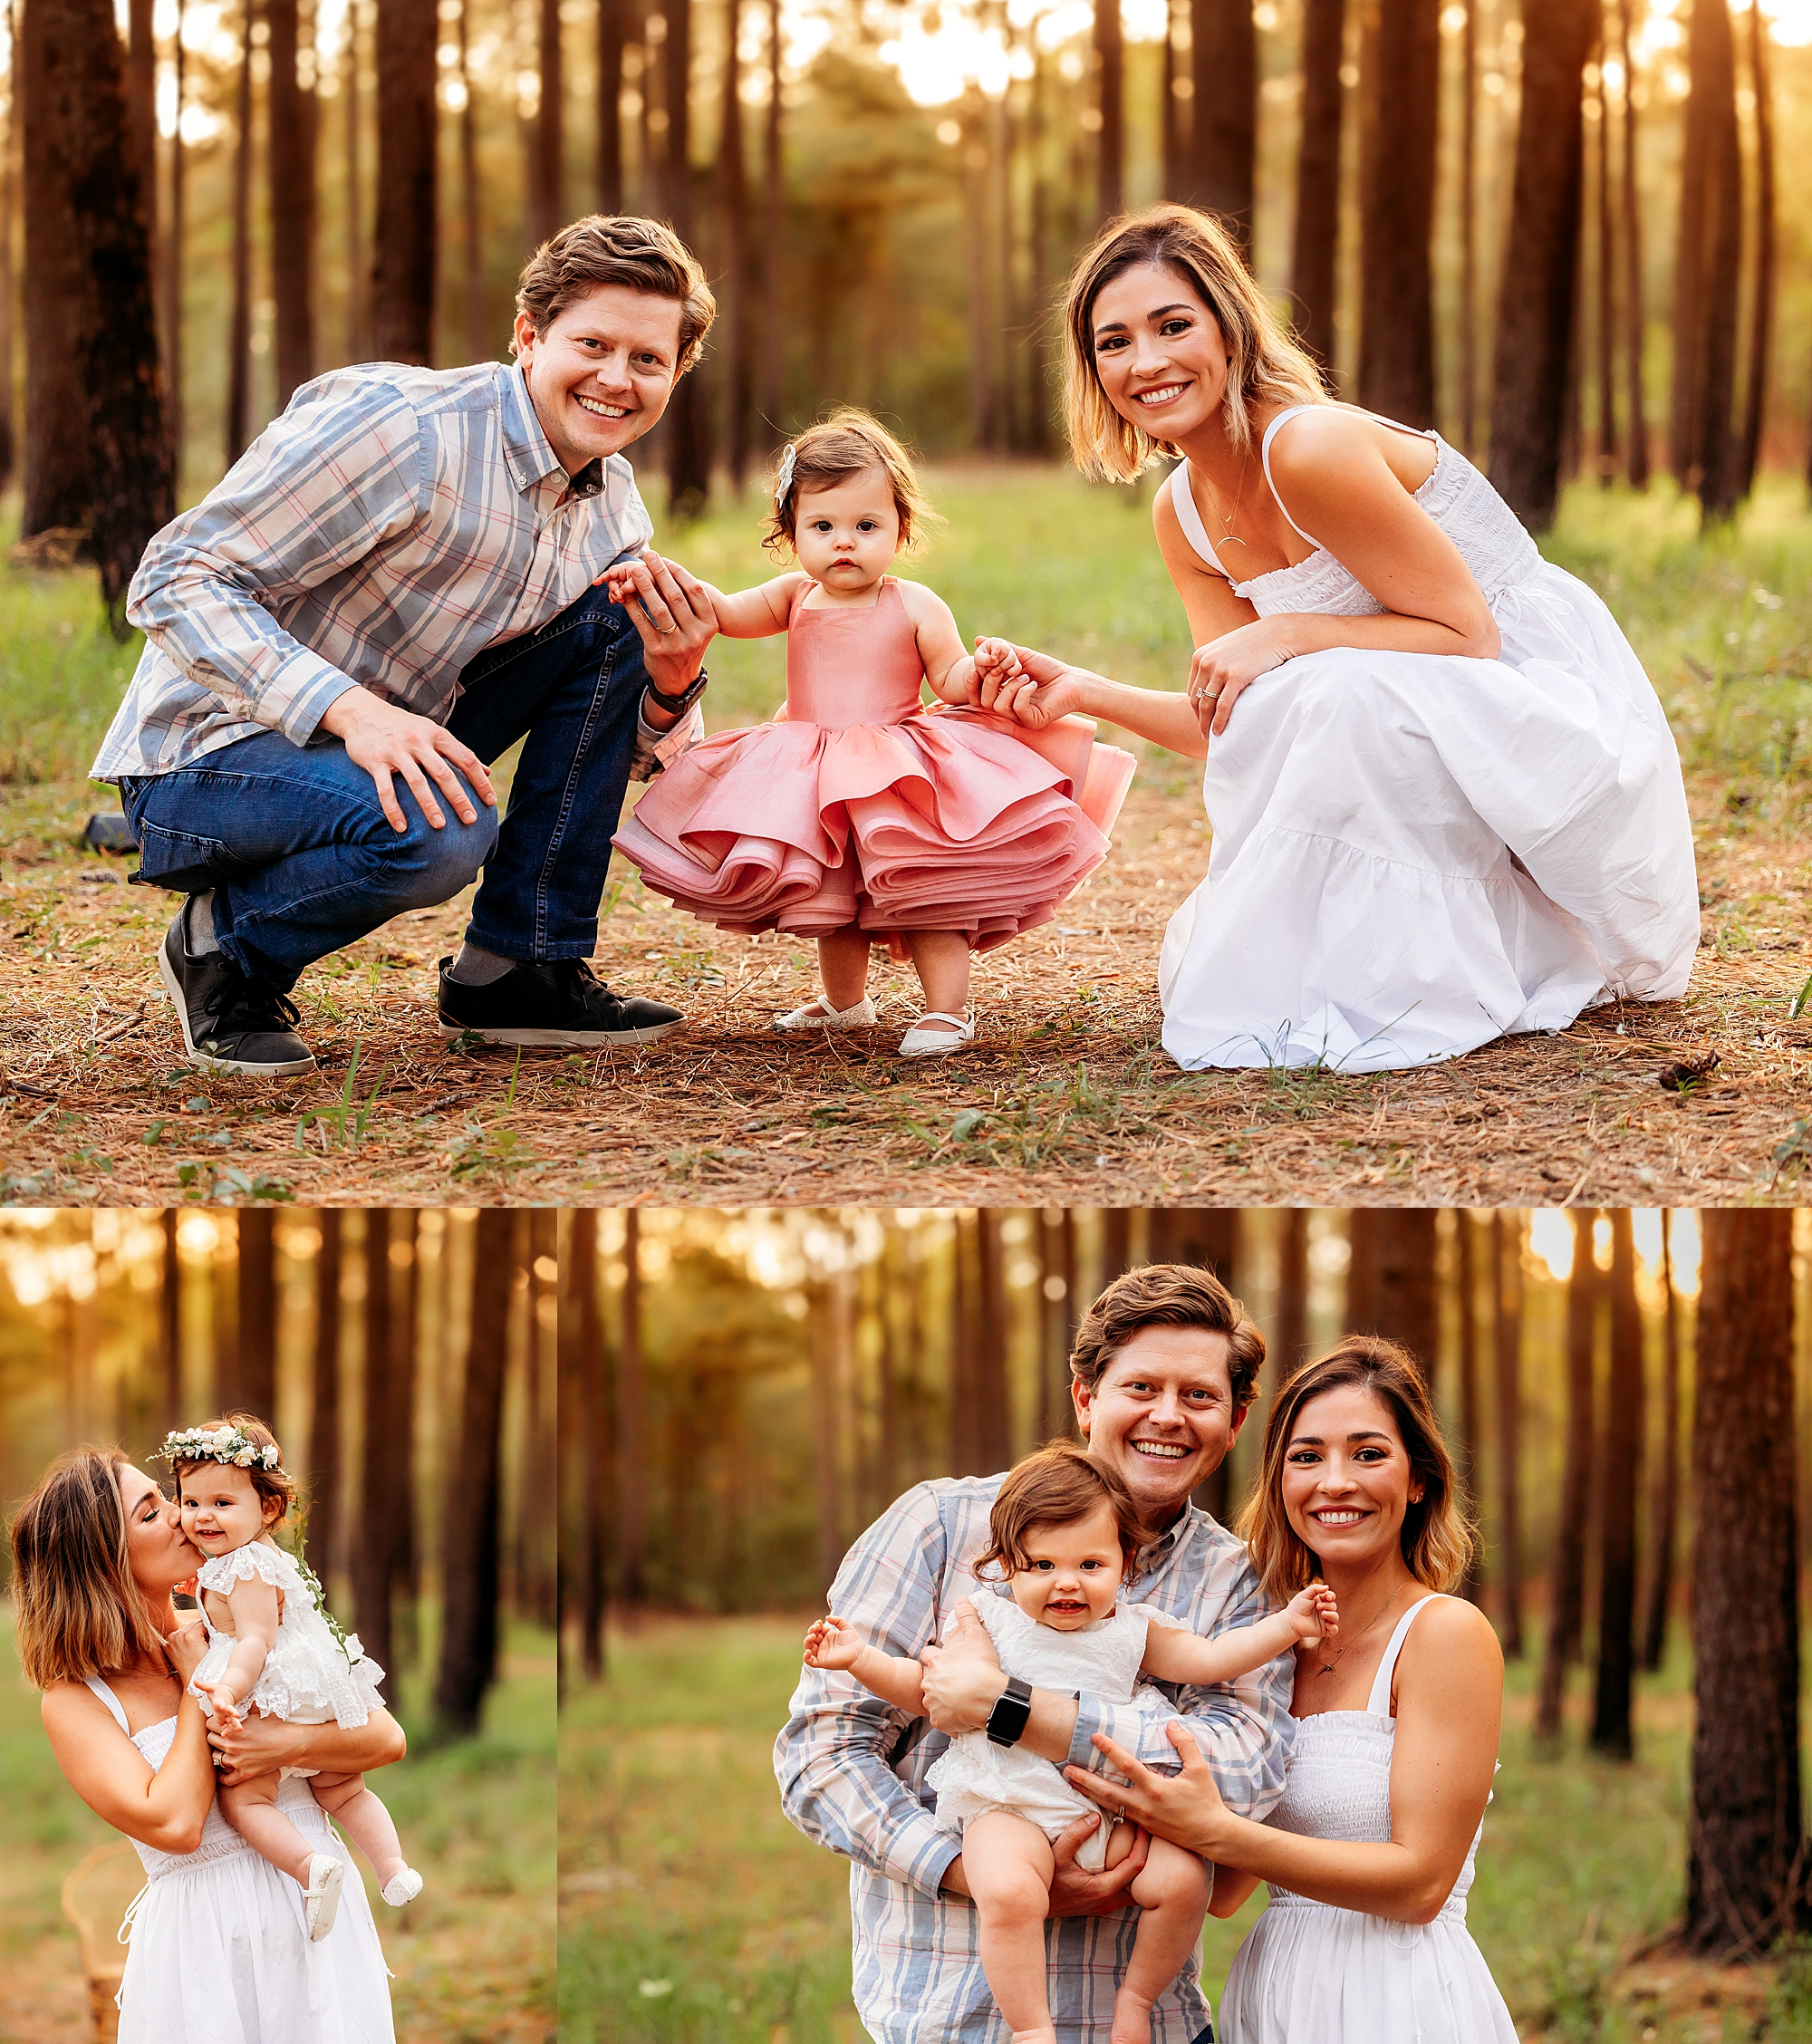 photoshoot with family